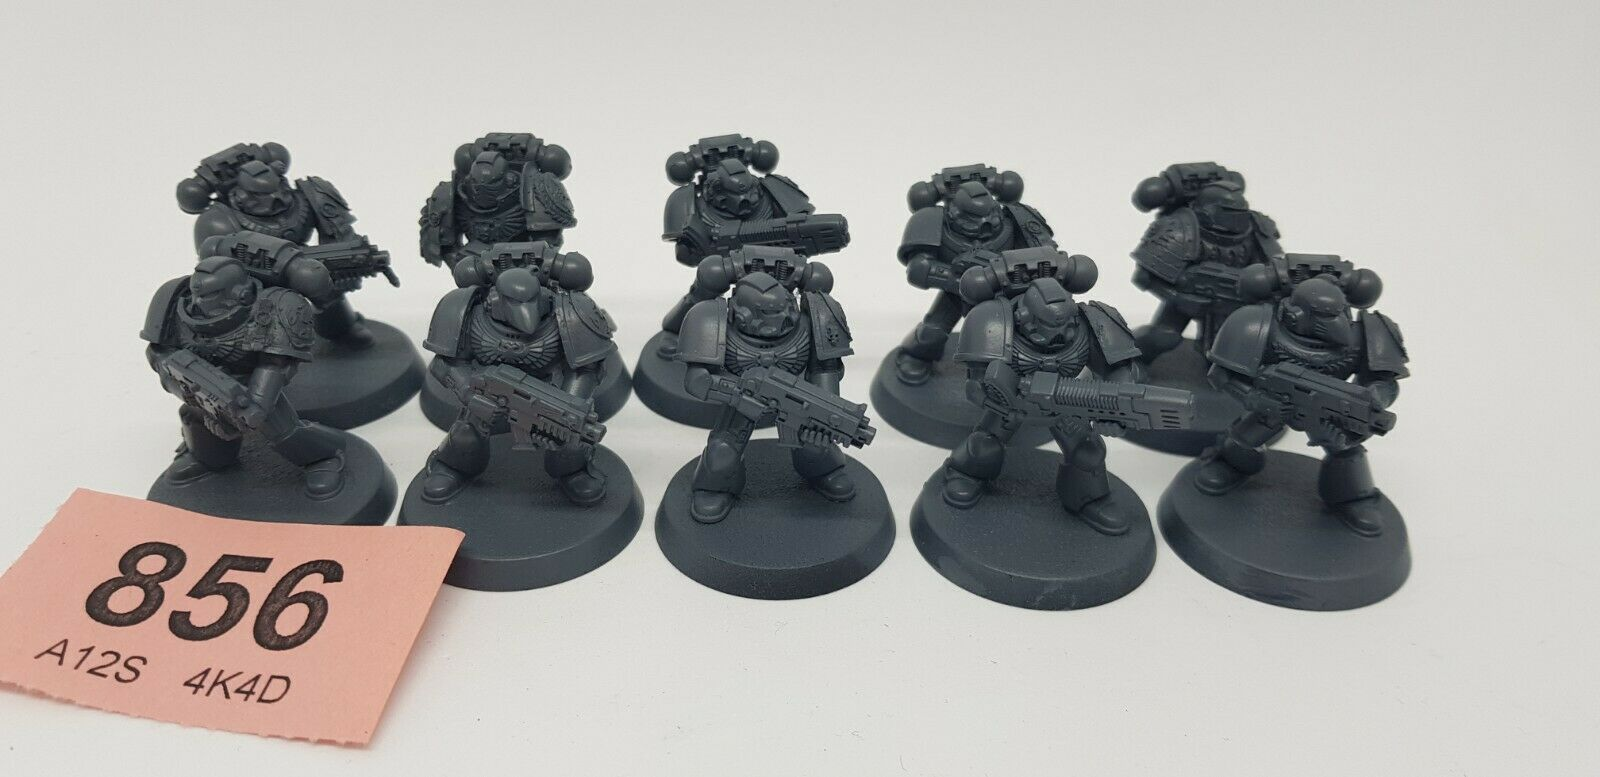 Warhammer 40k - Space Marines - Red Scorpions Tactical Squad  (856)